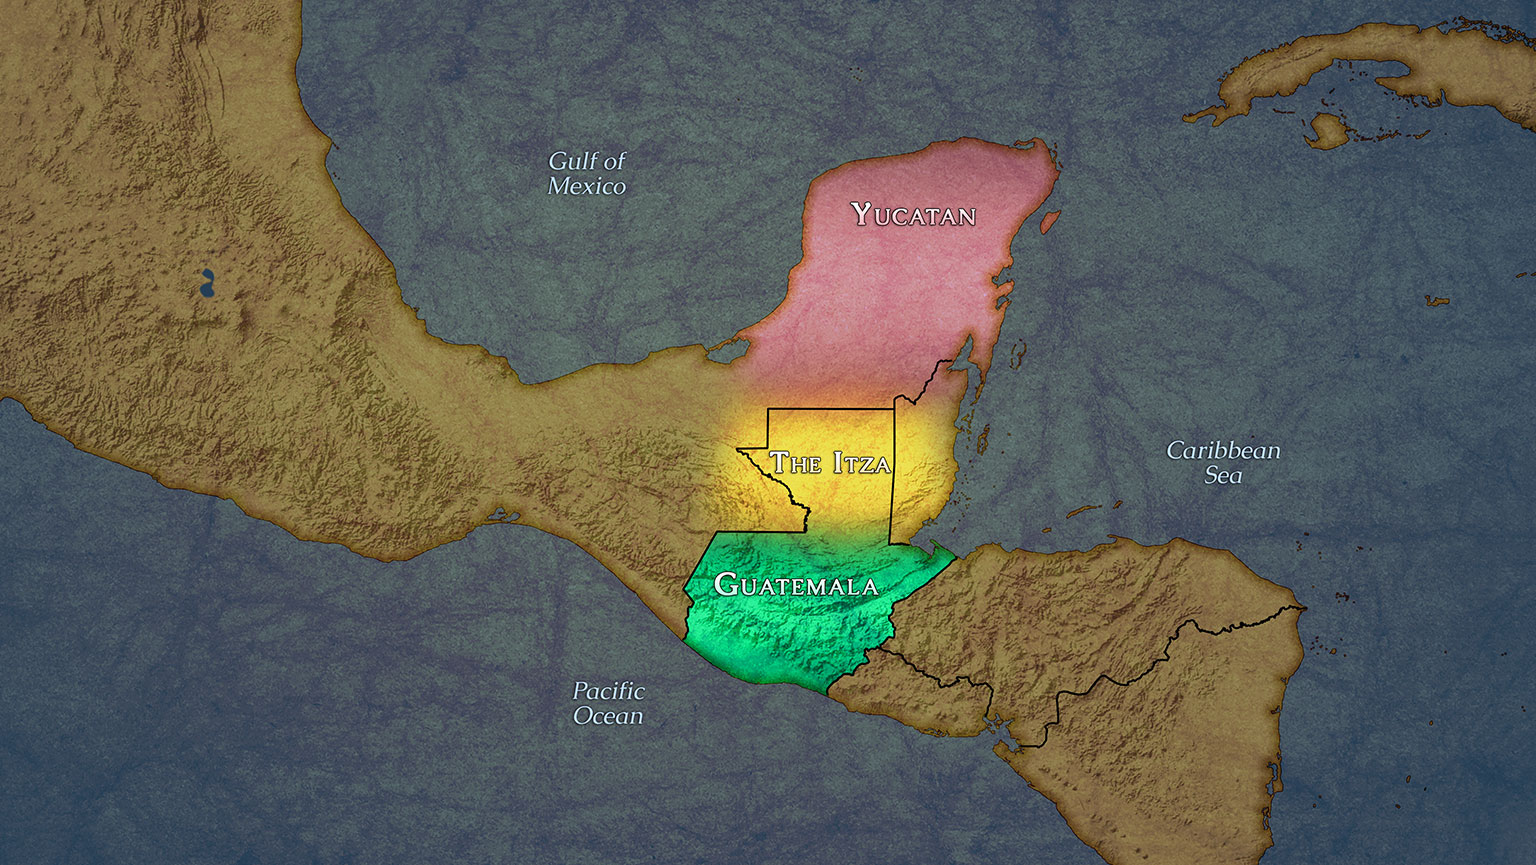 The Caste Wars of Yucatán